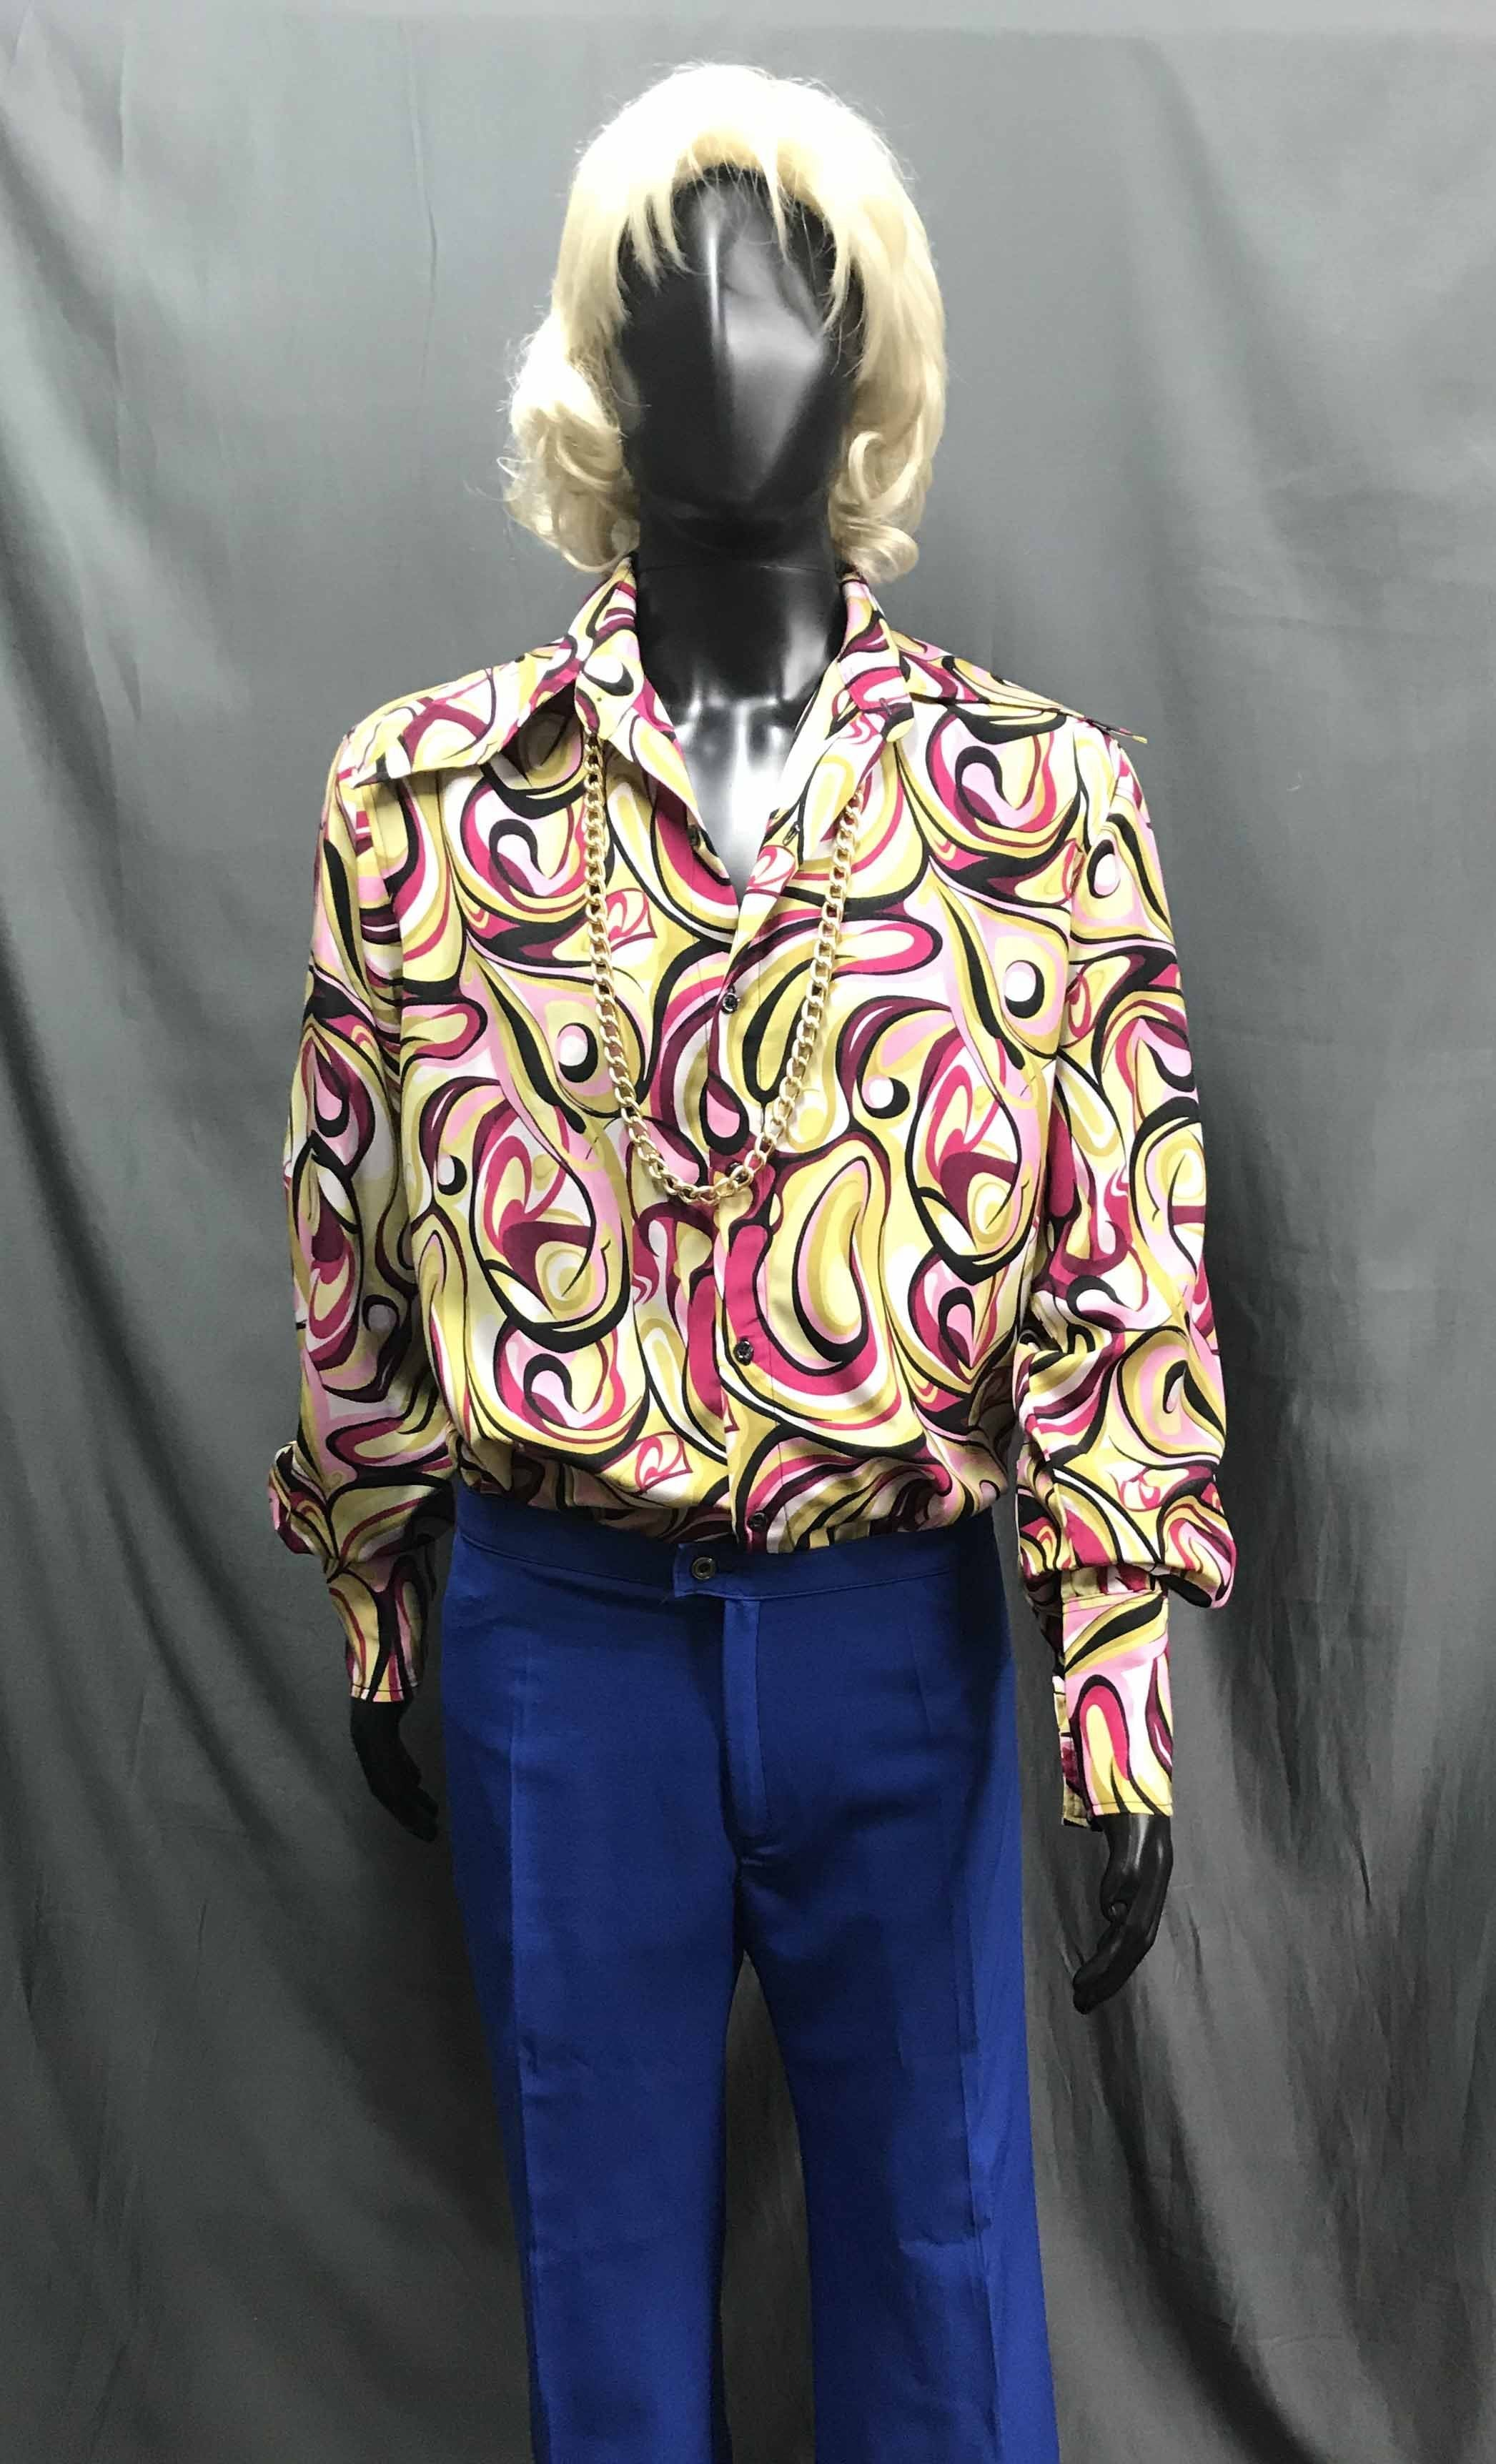 60-70s Mens Disco Costume - Pattern Shirt with Blue Flares - Hire - The Costume Company | Fancy Dress Costumes Hire and Purchase Brisbane and Australia